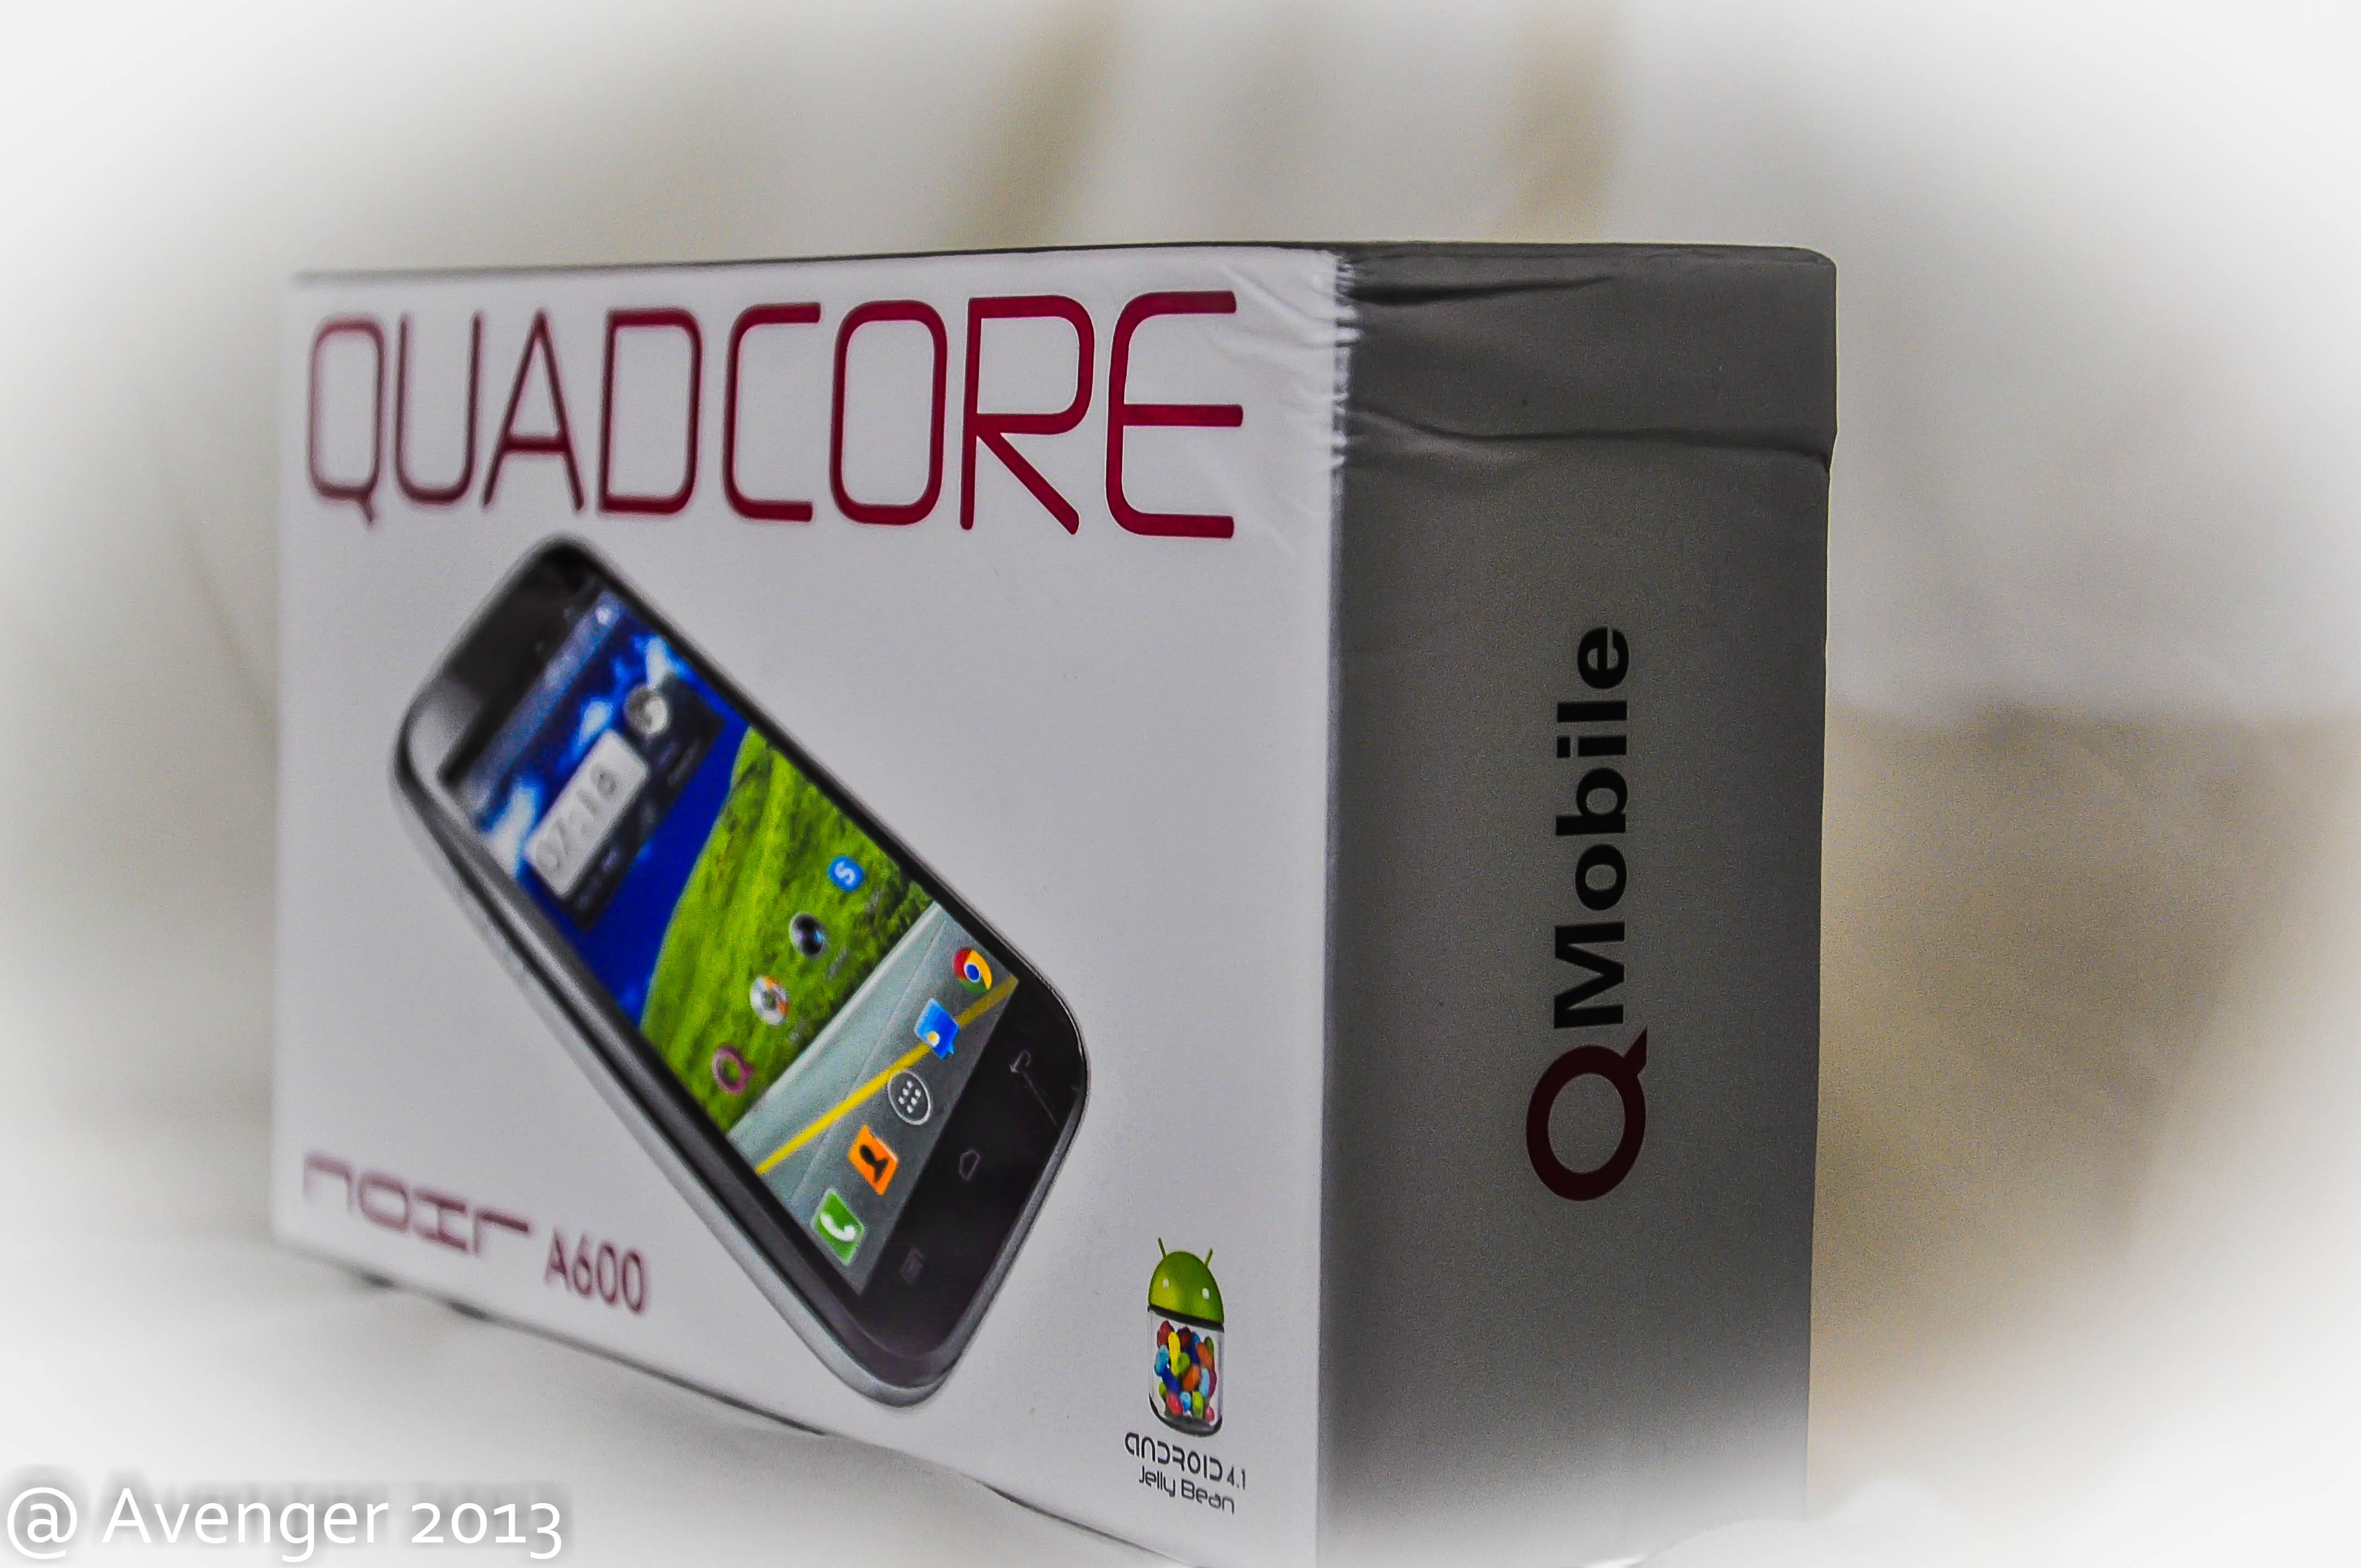 QMobile A600 Unboxing in Pakistan